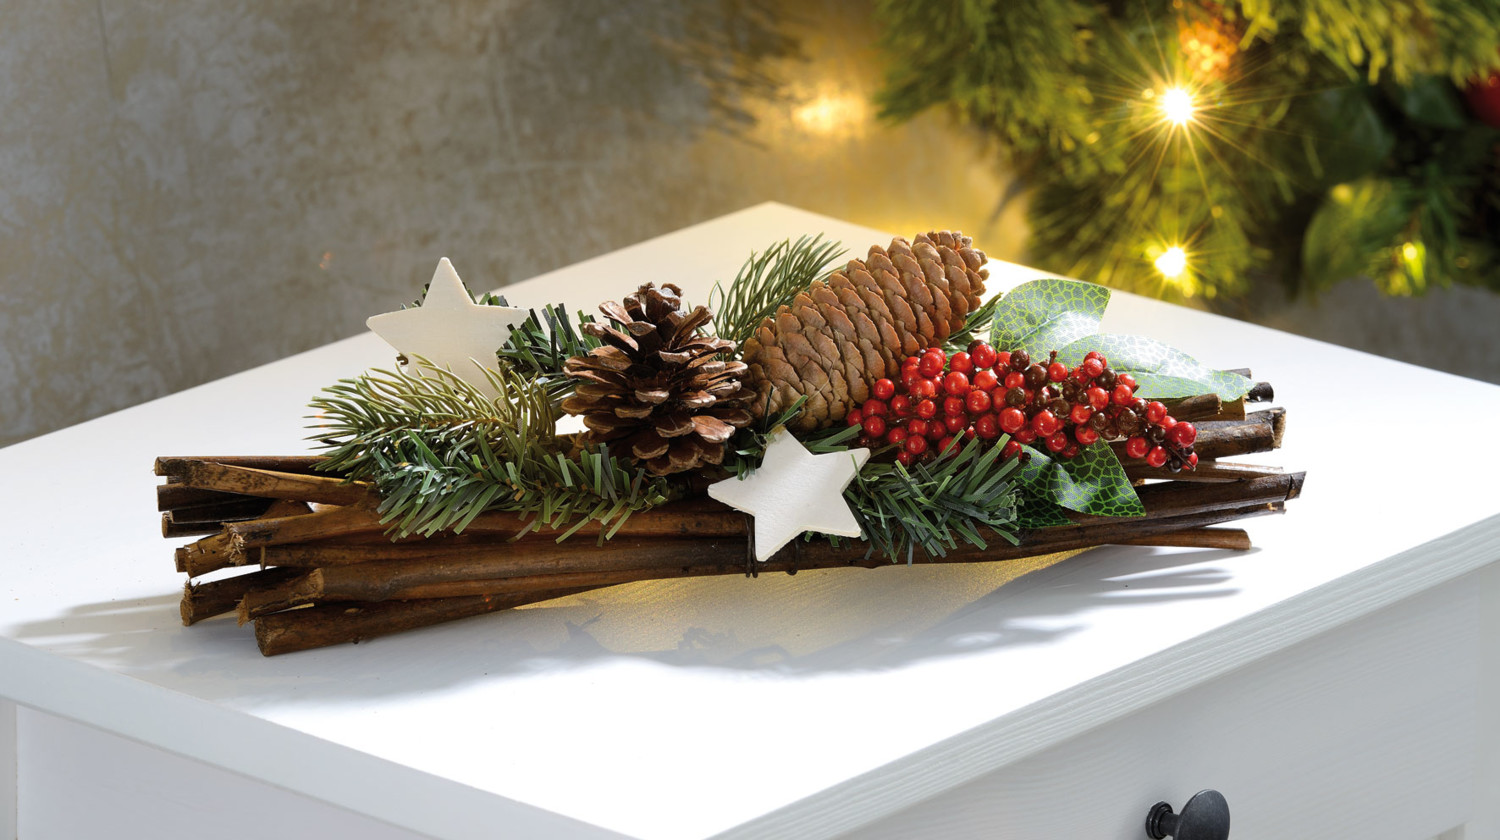 Decoration Table Pour Reveillon Noel